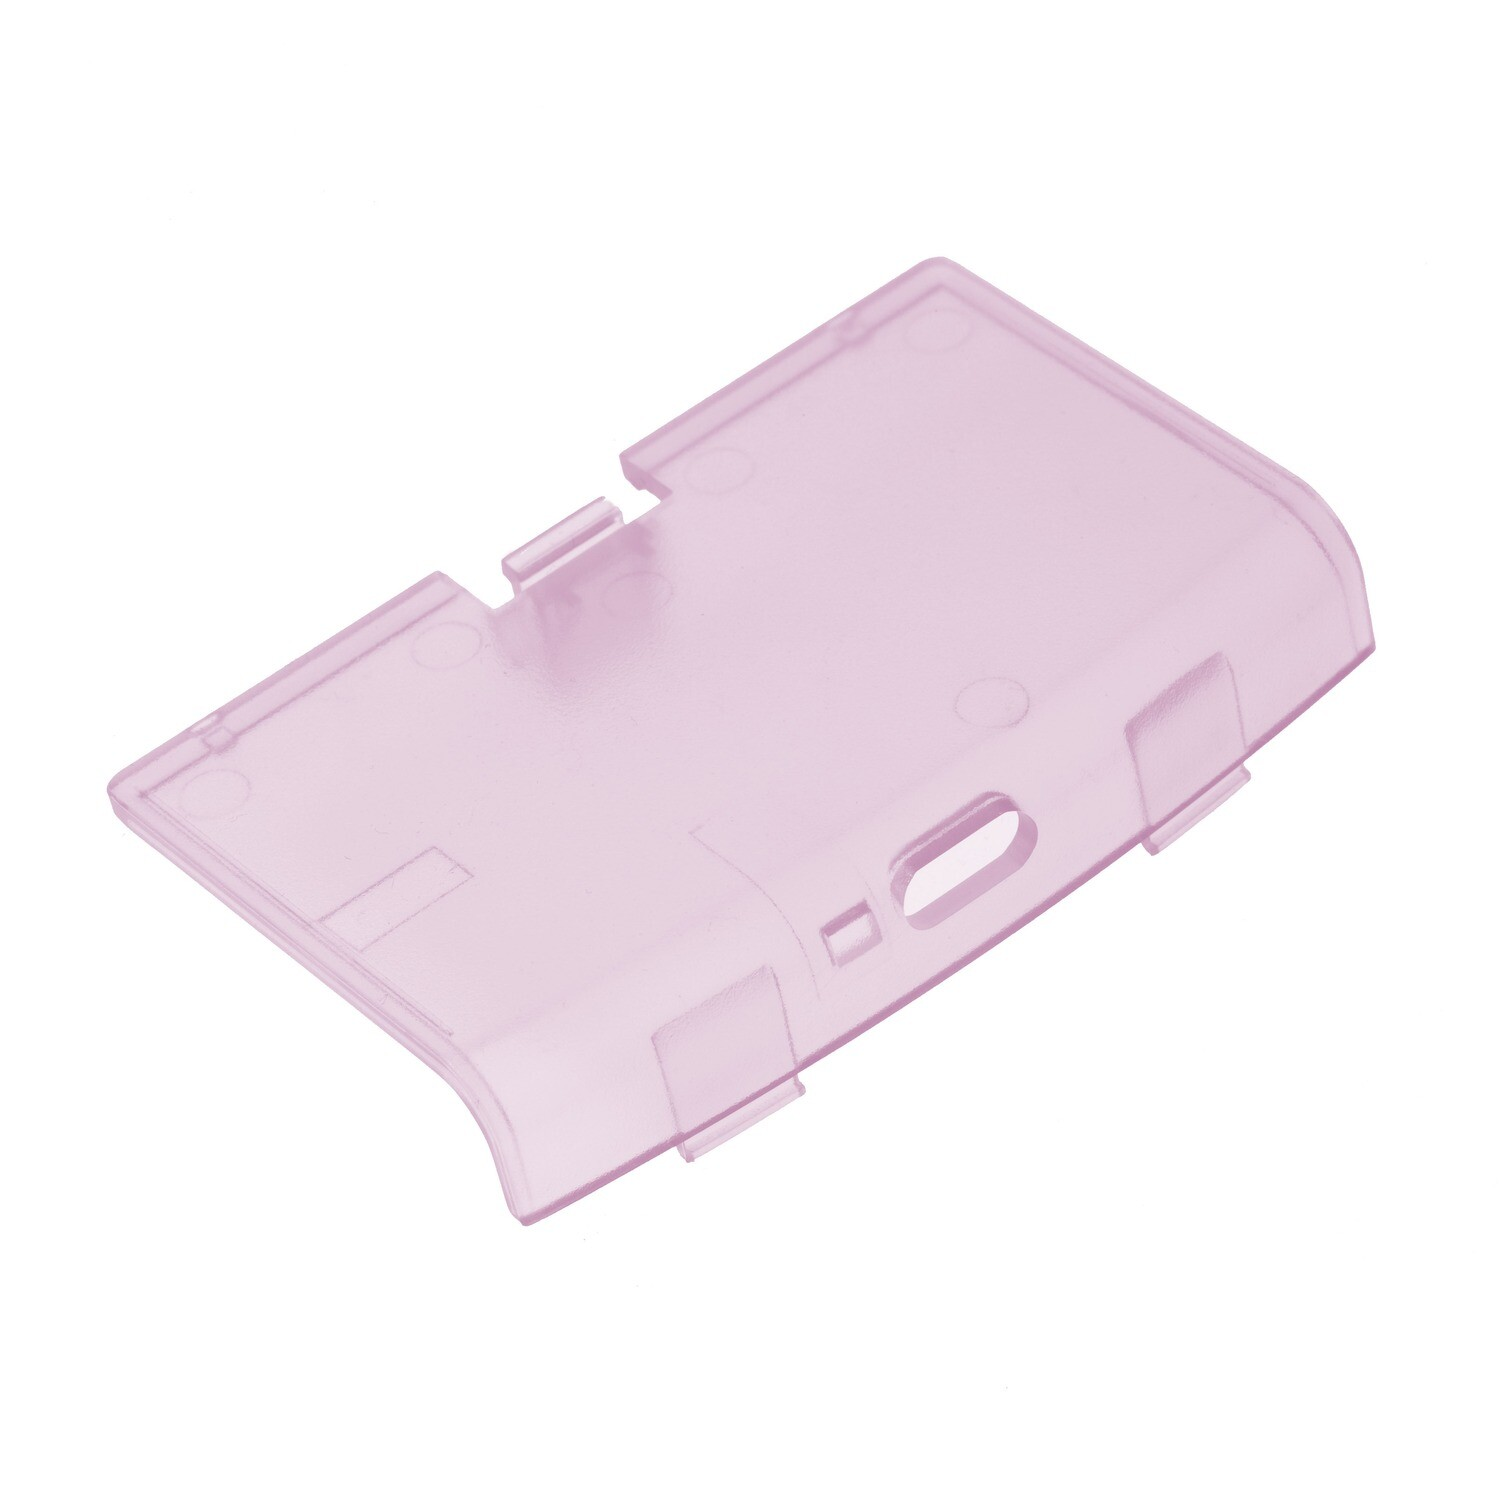 Game Boy Advance USB-C Battery Cover (Clear Pink)